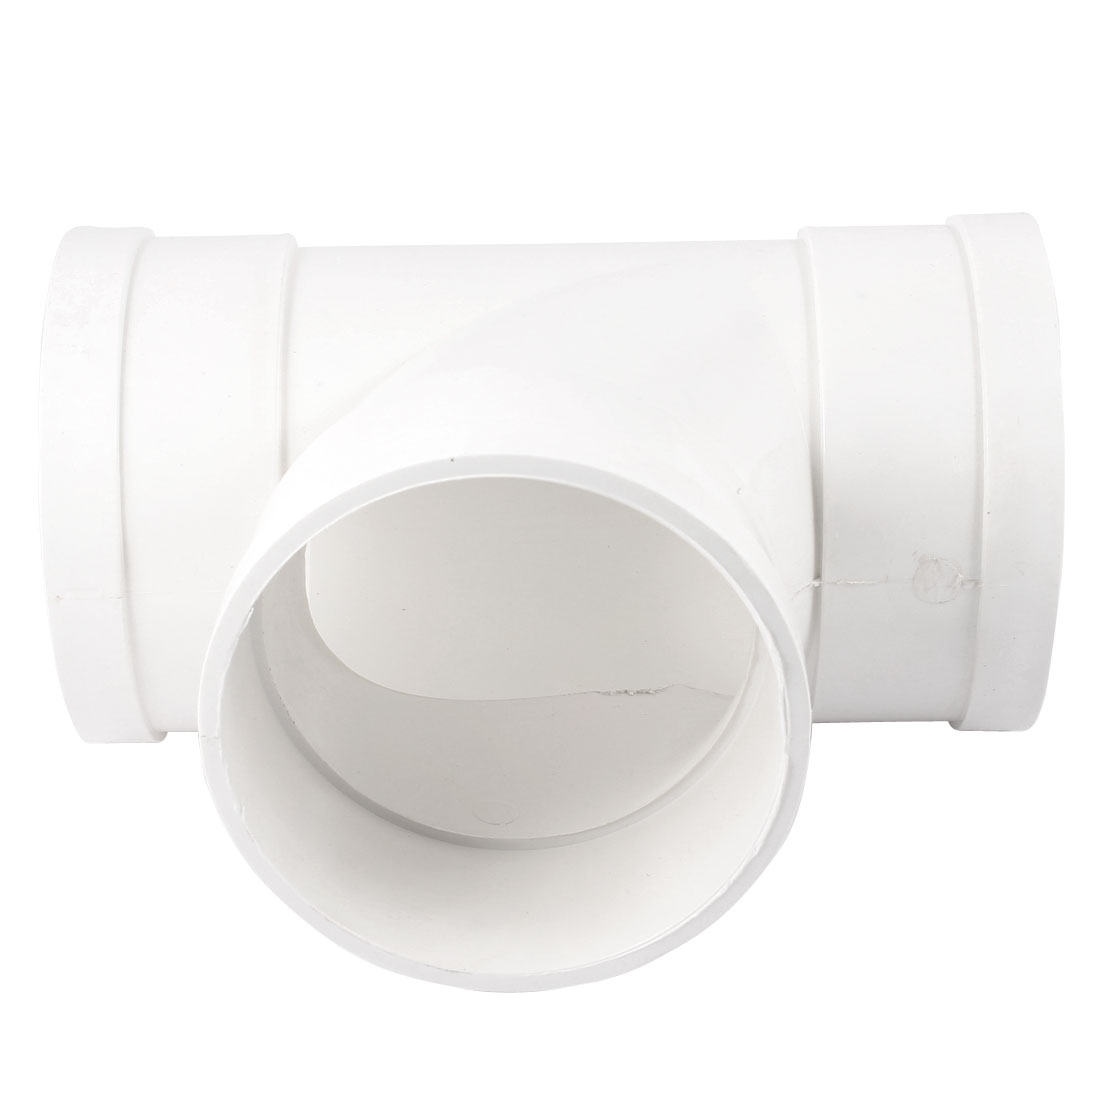 White PVC 110mm T Type 3 Way Water Pipe Hose Joint Adapter Connector